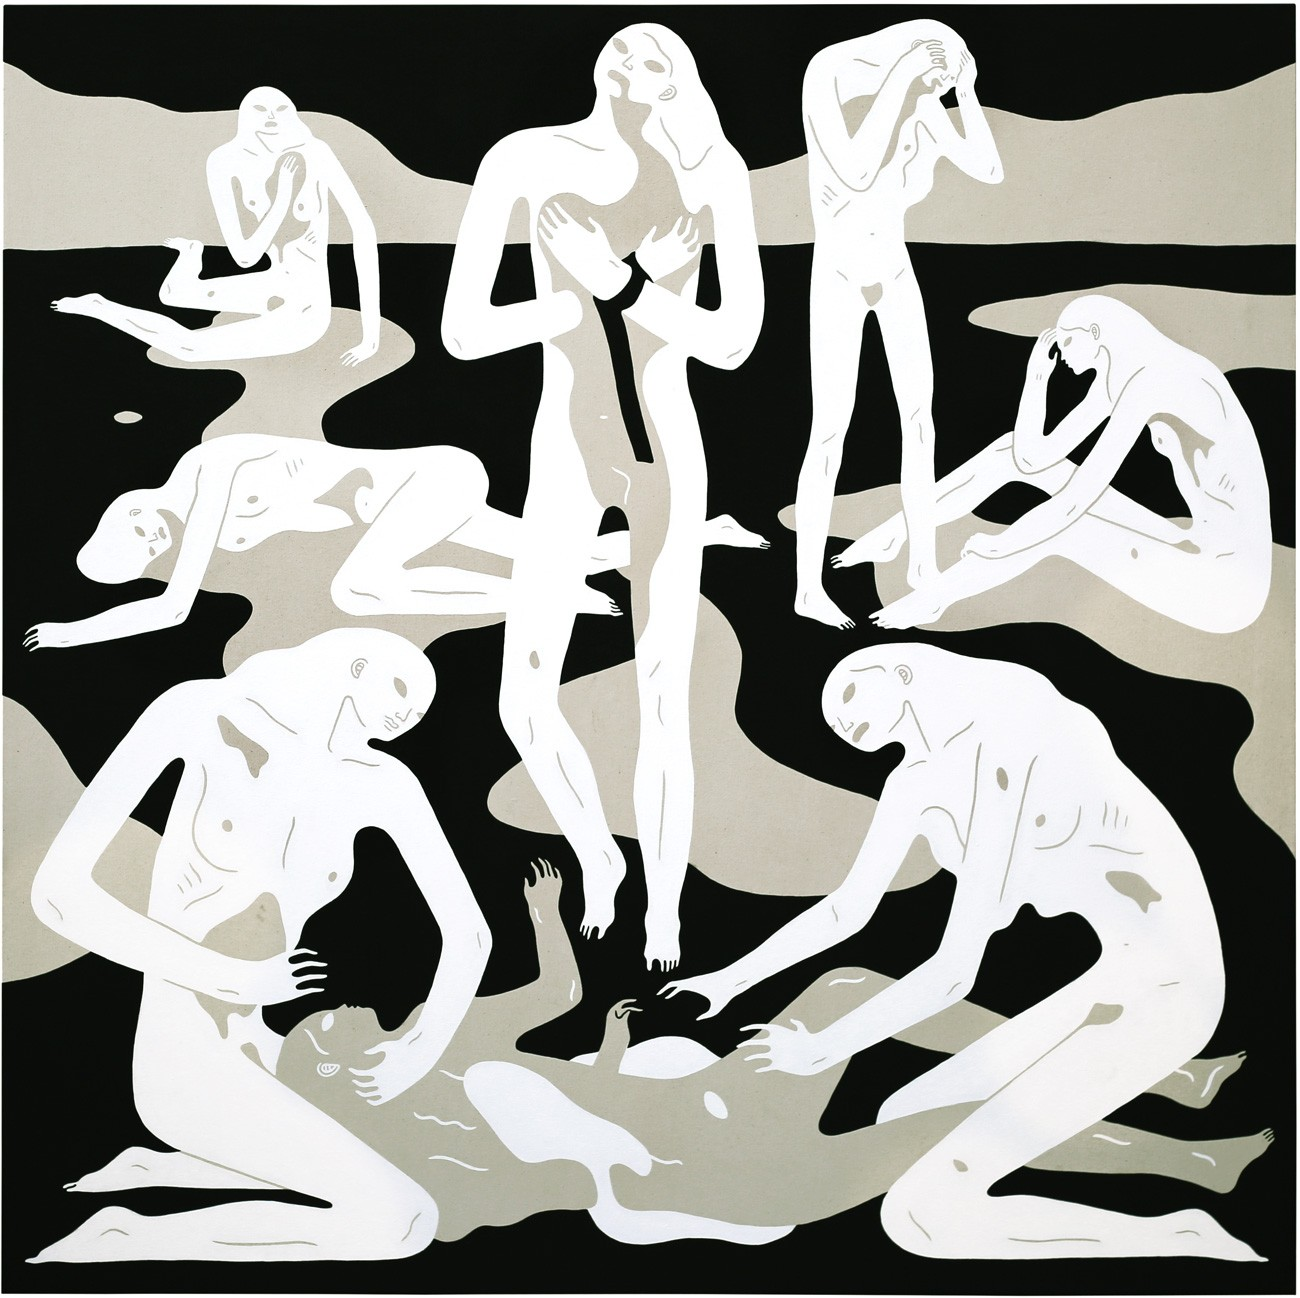 cleon-peterson-bench-talk-podcast-14.jpg